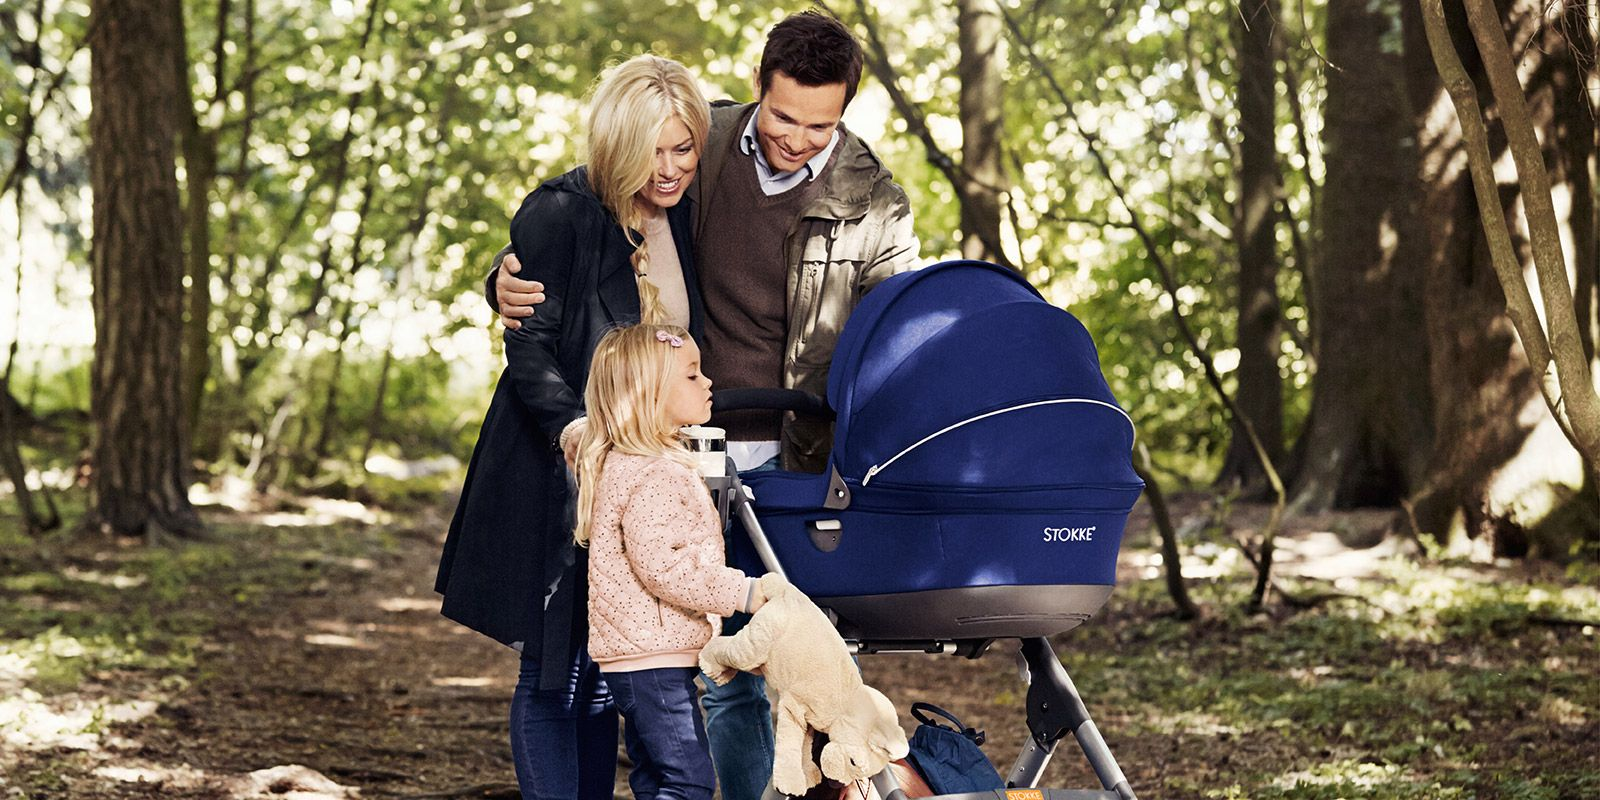 Stokke® Trailz™, the first all terrain stroller in our innovative stroller collection. The stroller is built for action, and takes your family wherever you want to go effortlessly, in ease and comfort,